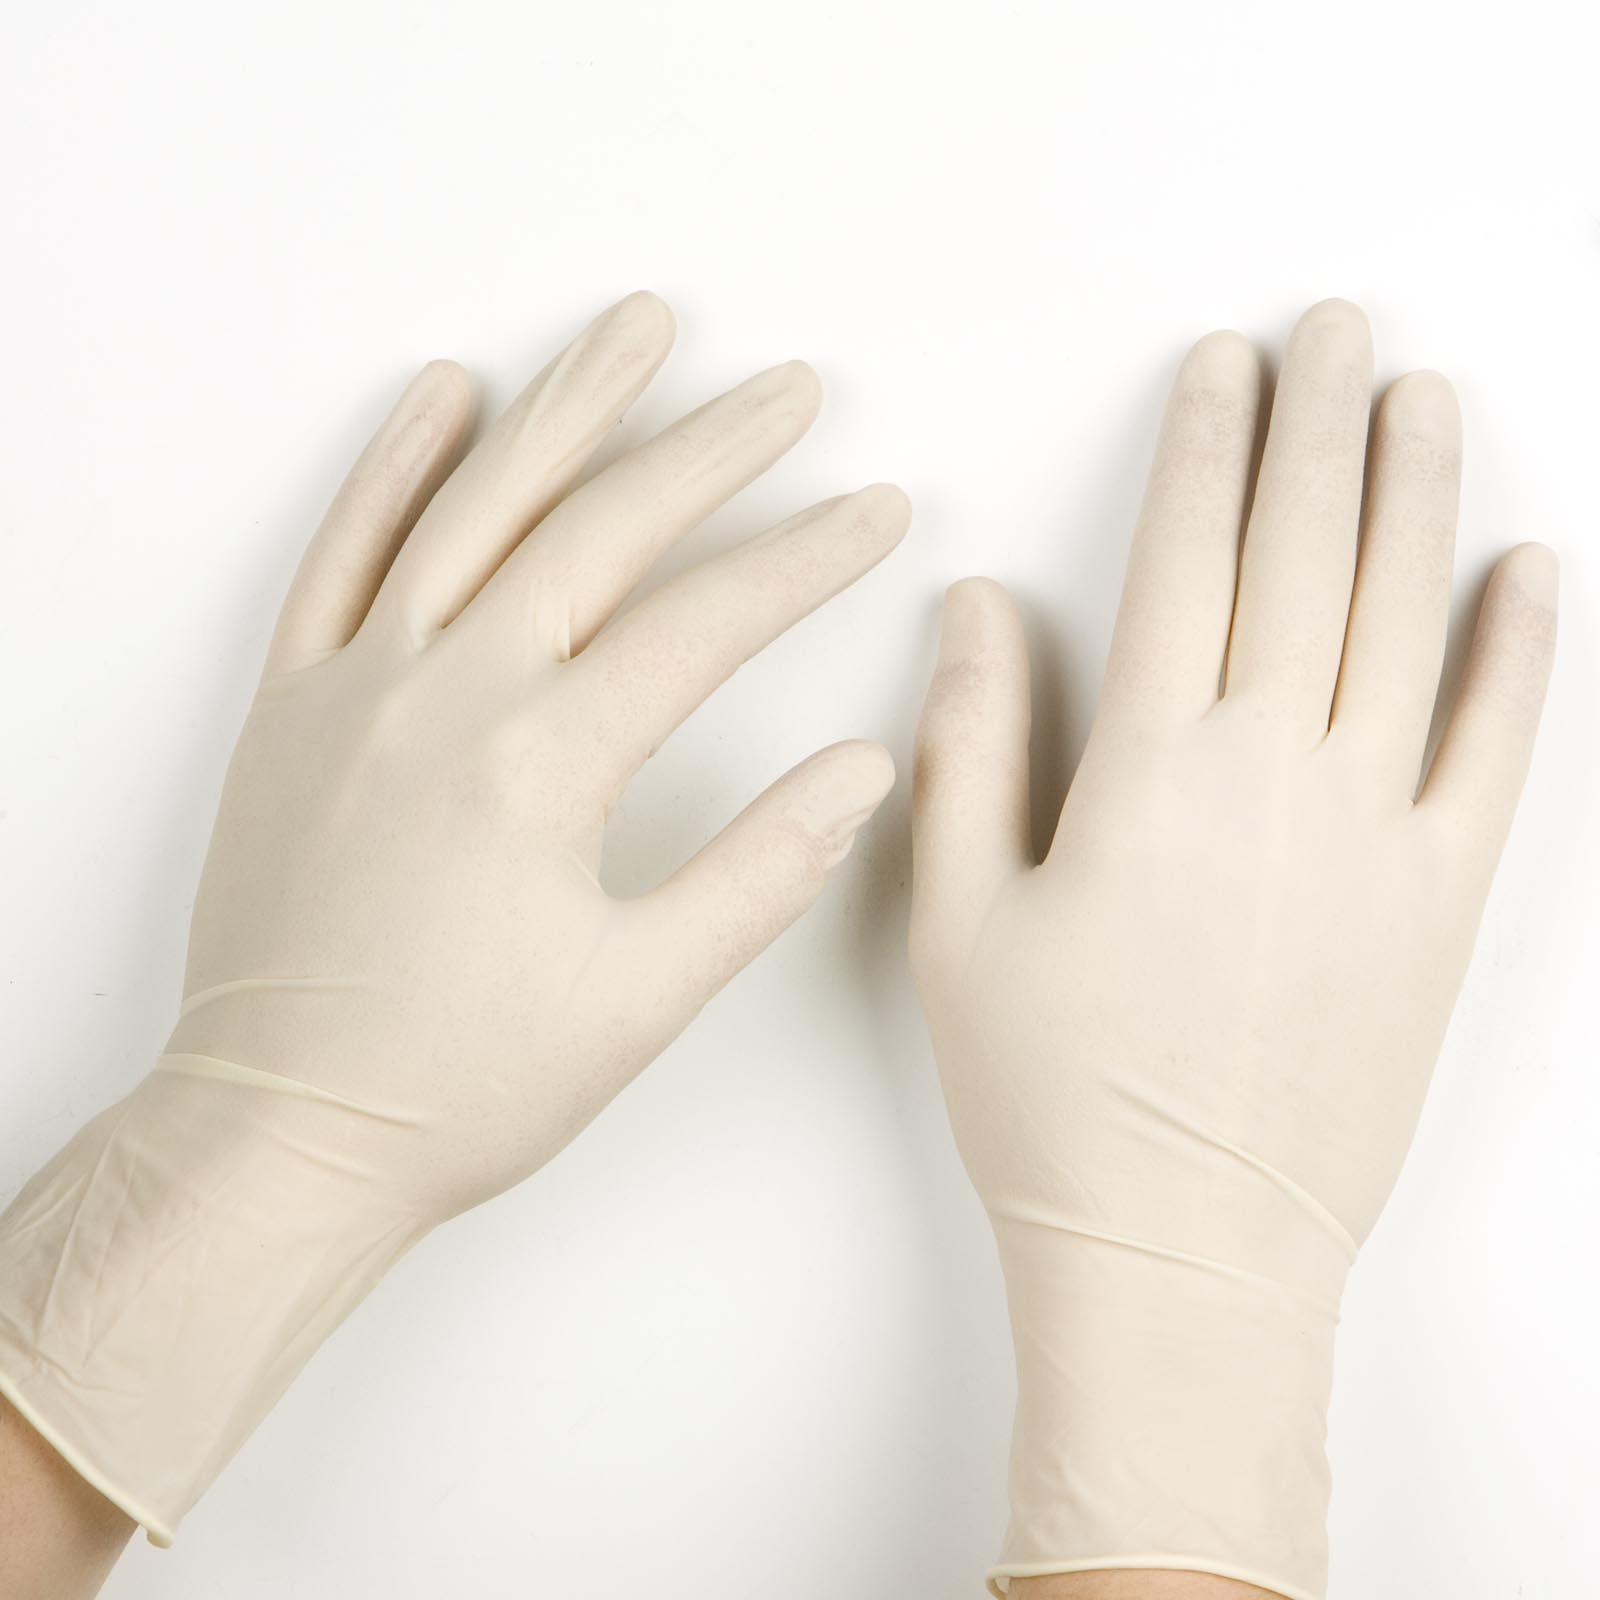 disposable latex gloves: